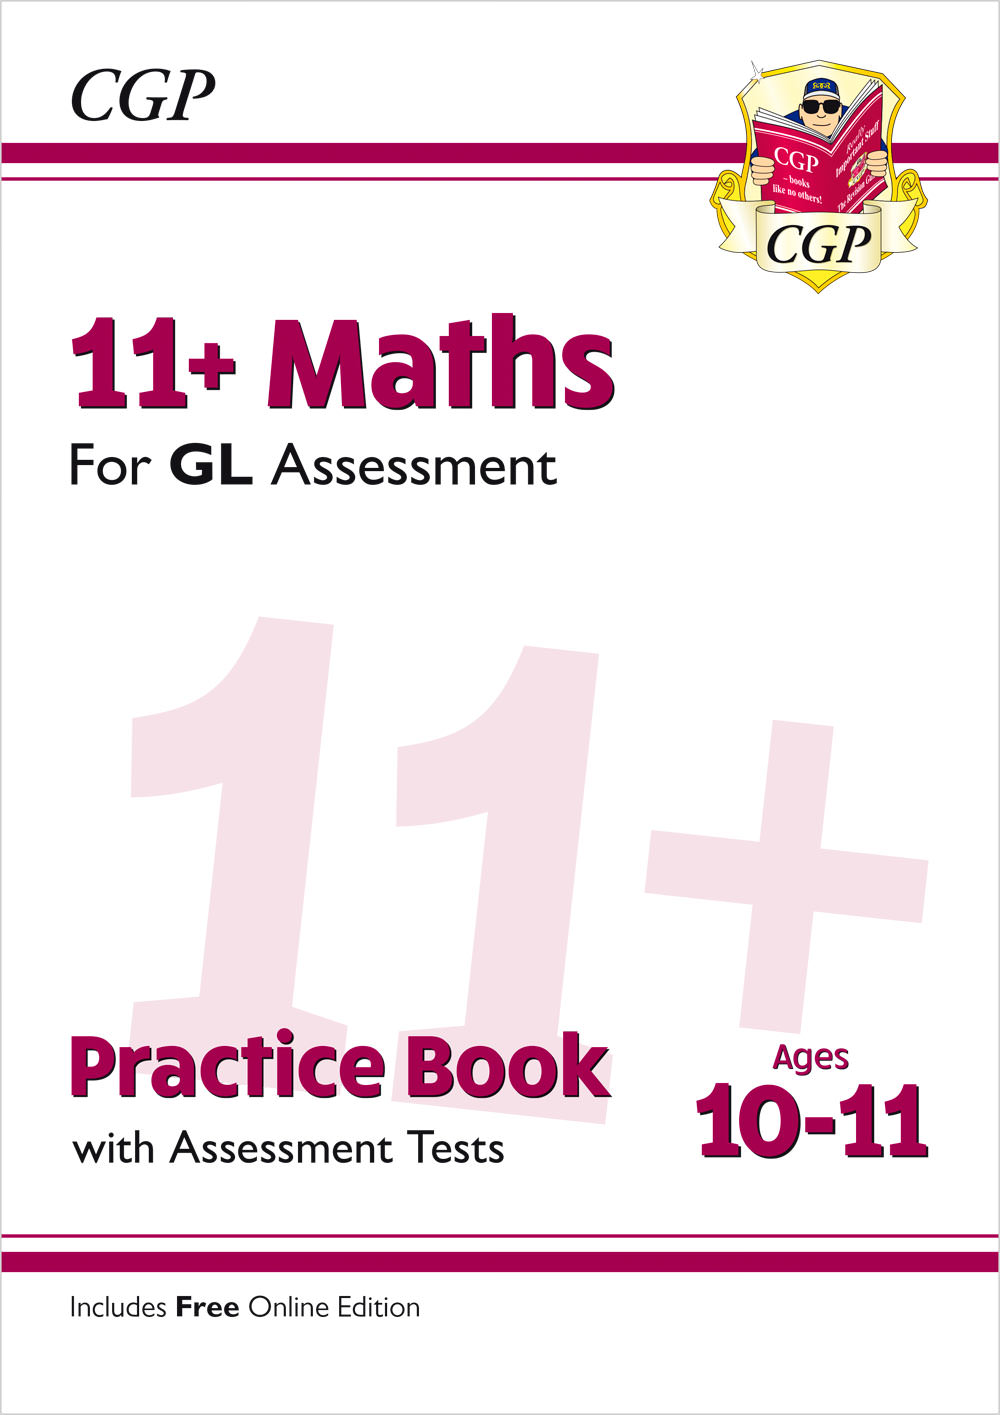 M6QE2 - 11+ GL Maths Practice Book & Assessment Tests - Ages 10-11 (with Online Edition)